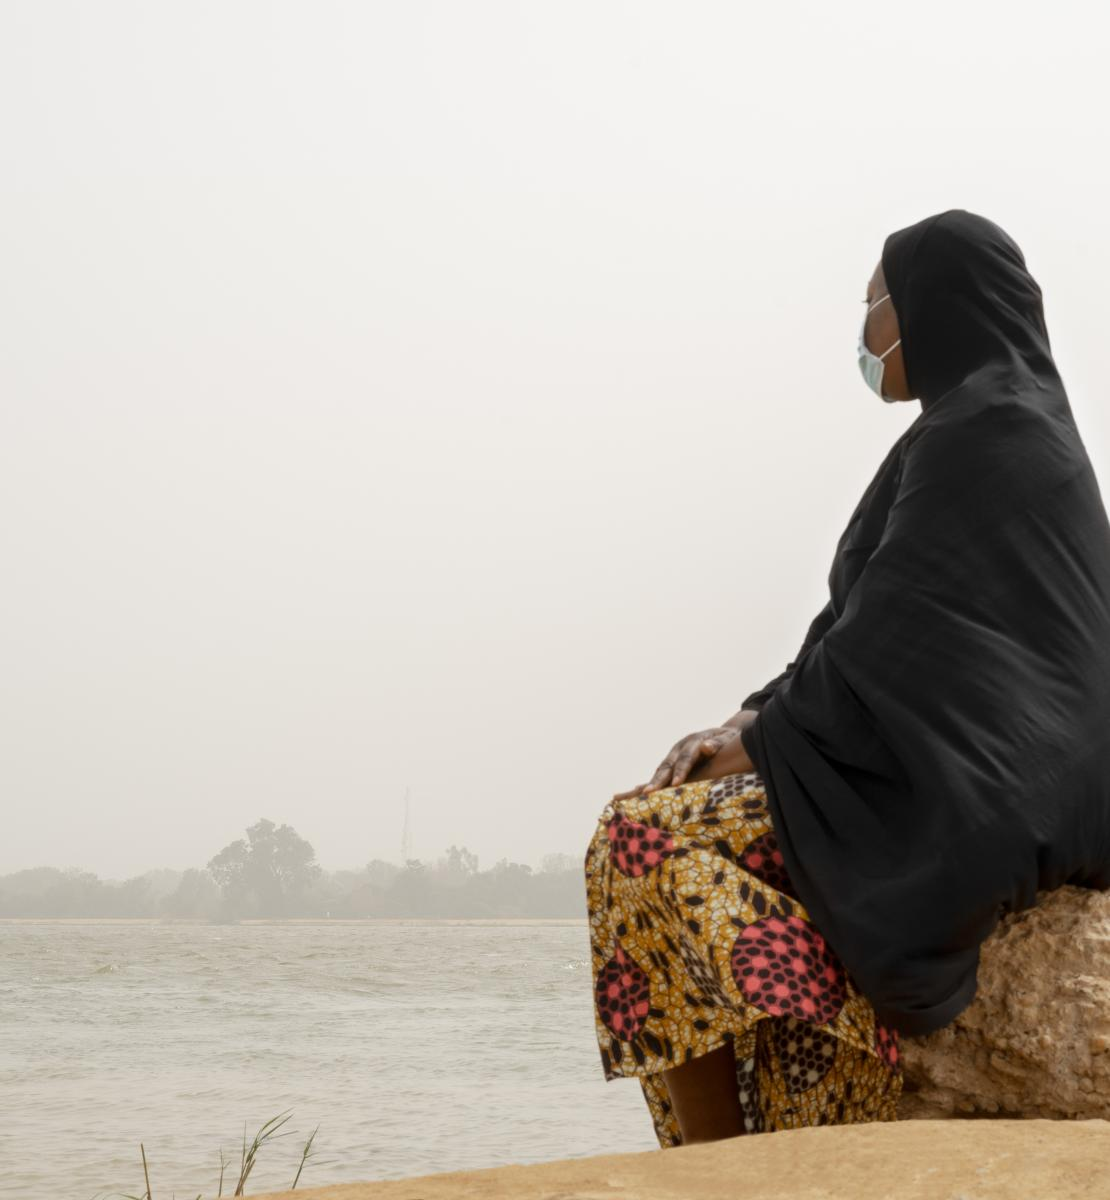 A woman sits on a rock looking out into the distance over a body of water.